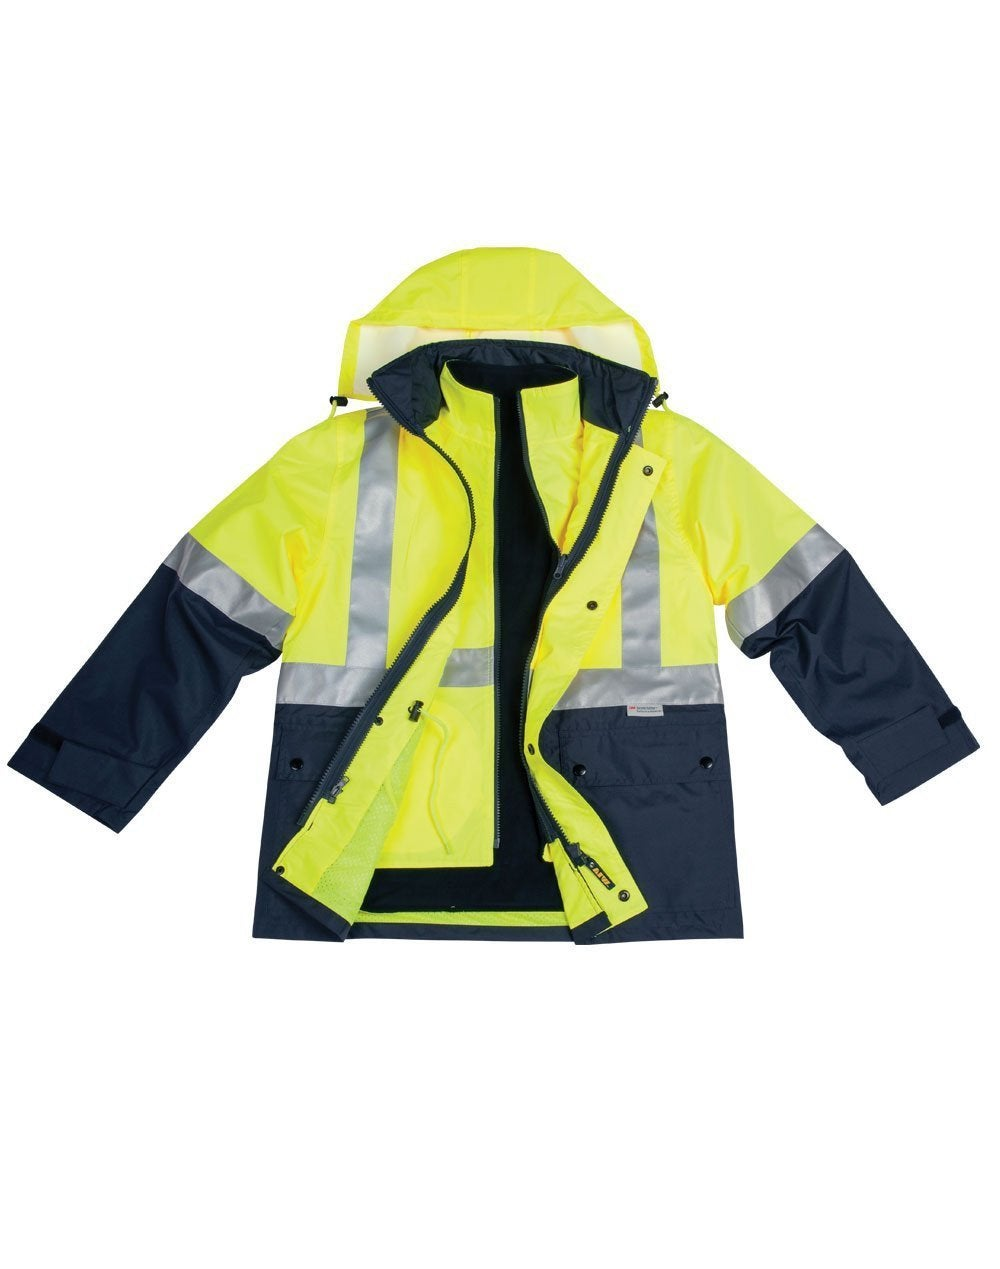 Hi-Vis 3in1 Jacket/Vest Combo